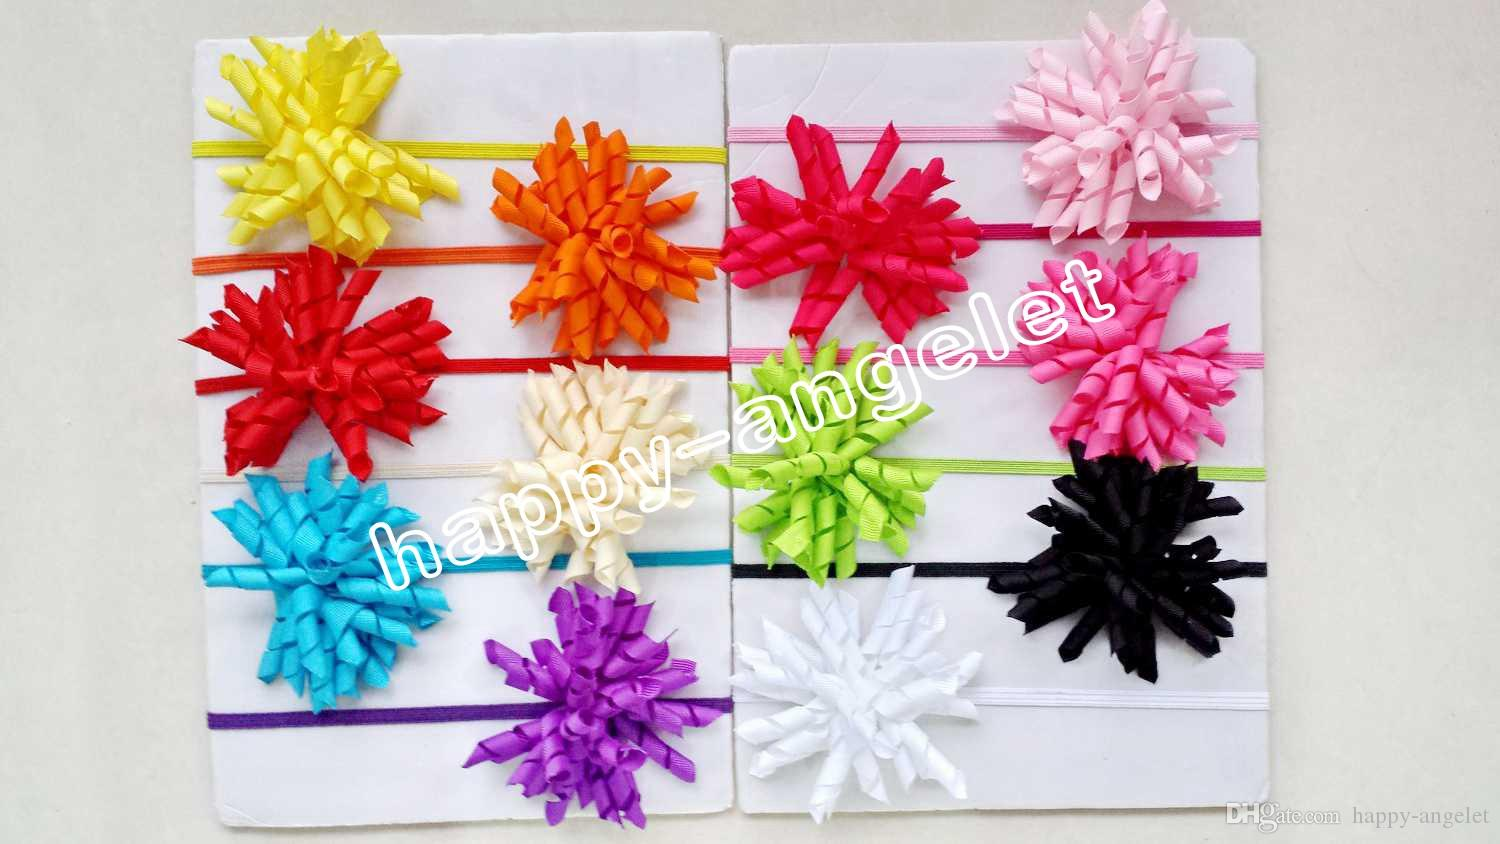 Baby stretchy headband korker bow flower clip hairband hot sale skinny Elastic slender rubber band Gymboree style hair ties 50PCS PD013